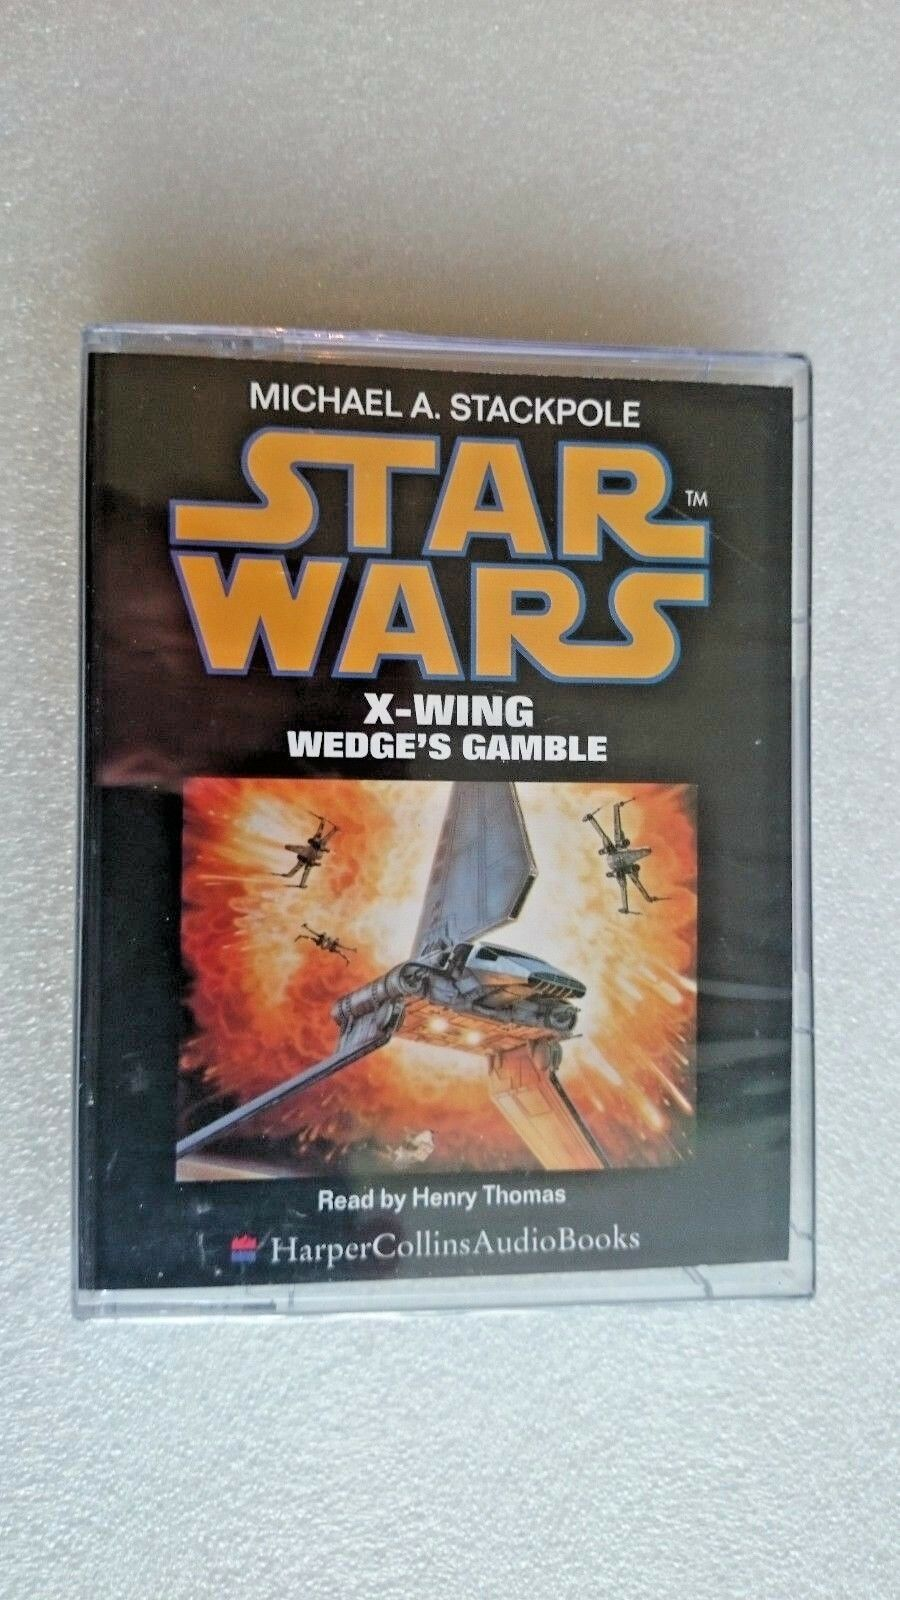 Star Wars: X Wing/Wedge's Gamble by Michael A. Stackpole (Audio cassette, 1997)